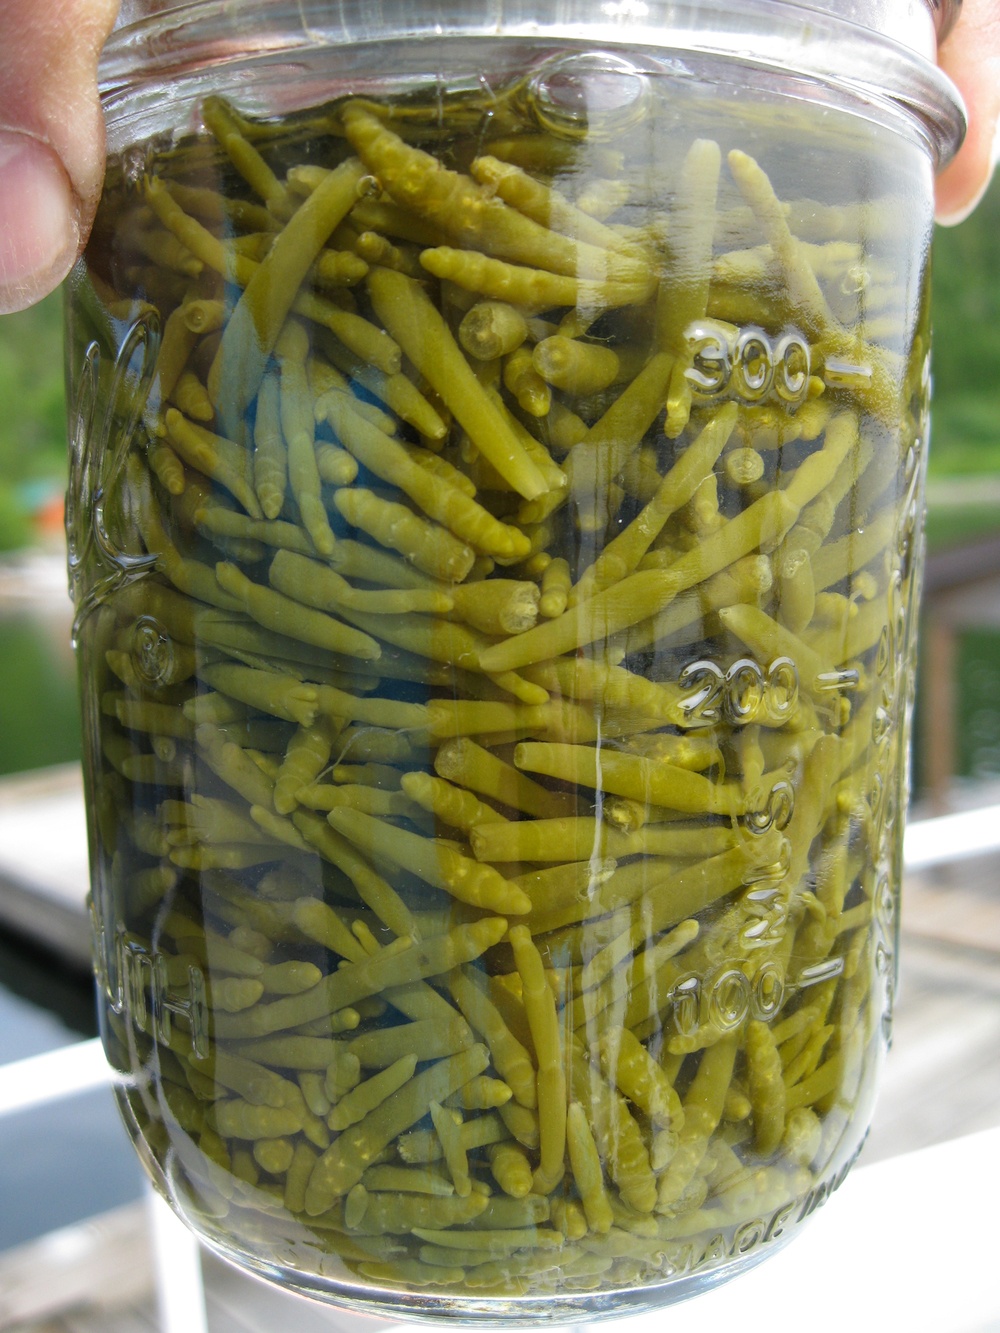 Canned beach asparagus takes on an olive-green color.